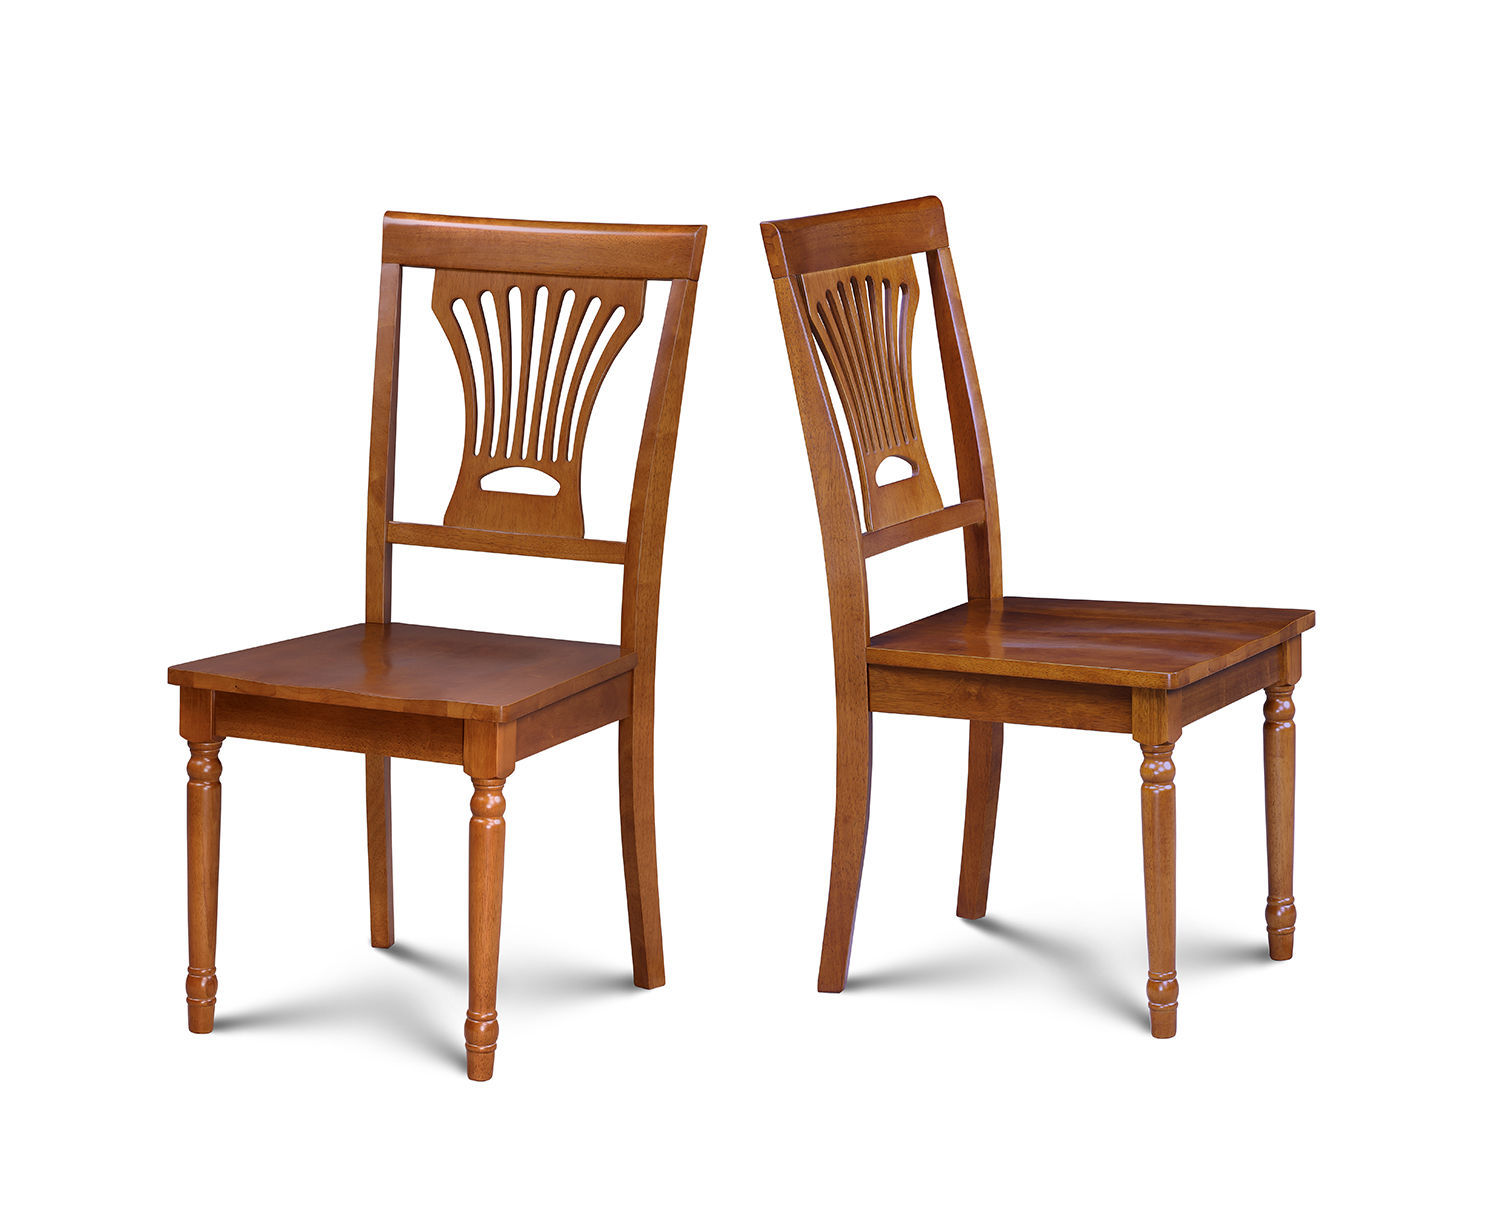 SET OF 6 DINING SIDE CHAIR WITH SOFT-PADDED SEATS IN SADDLE BROWN